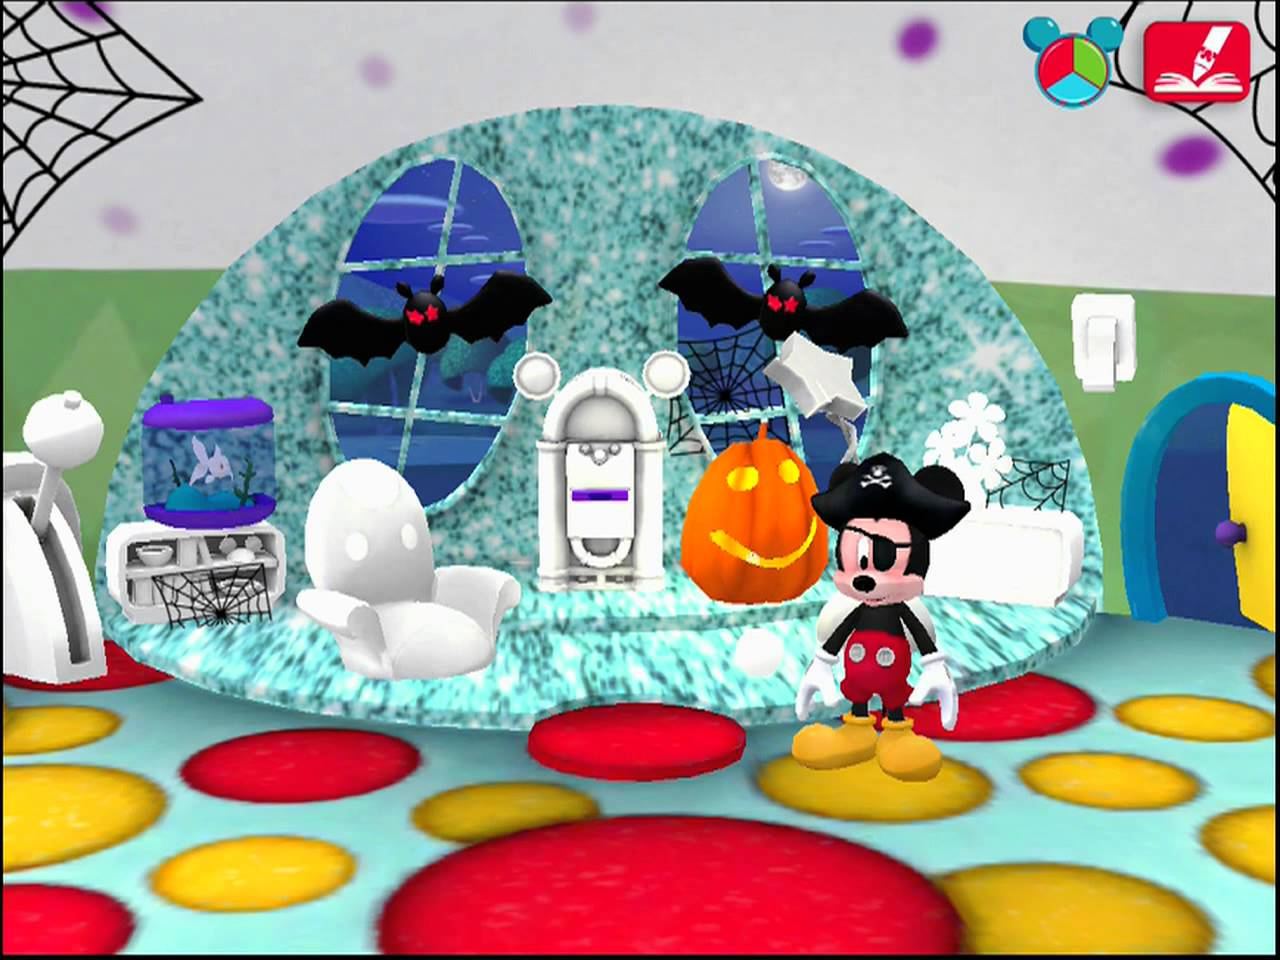 Mickey Mouse Halloween Backgrounds, Compatible - PC, Mobile, Gadgets| 1280x960 px